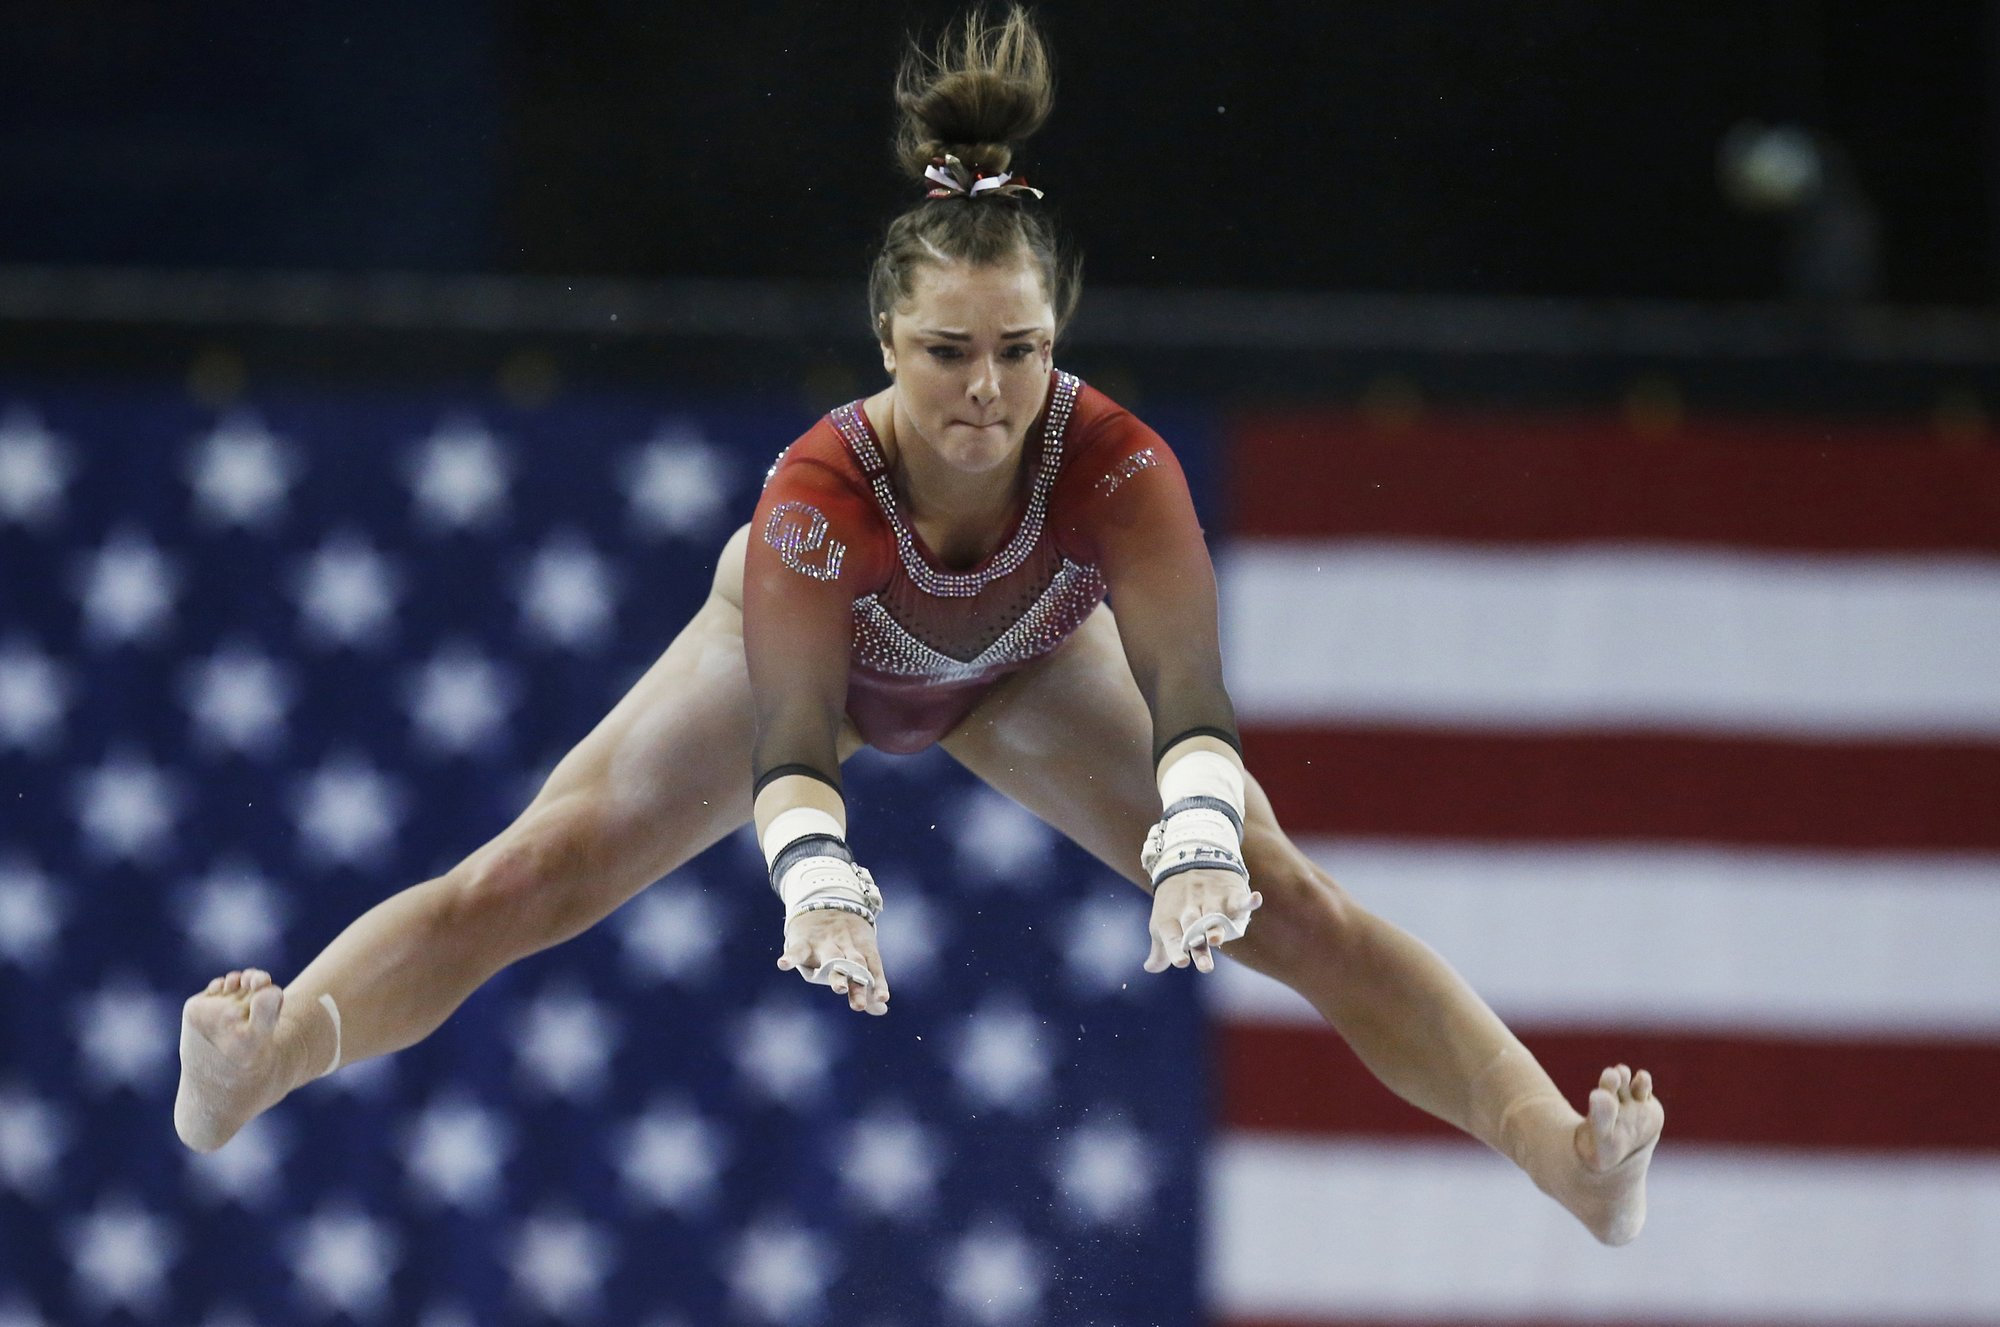 4-time champ Nichols is more than Athlete A in Nassar case